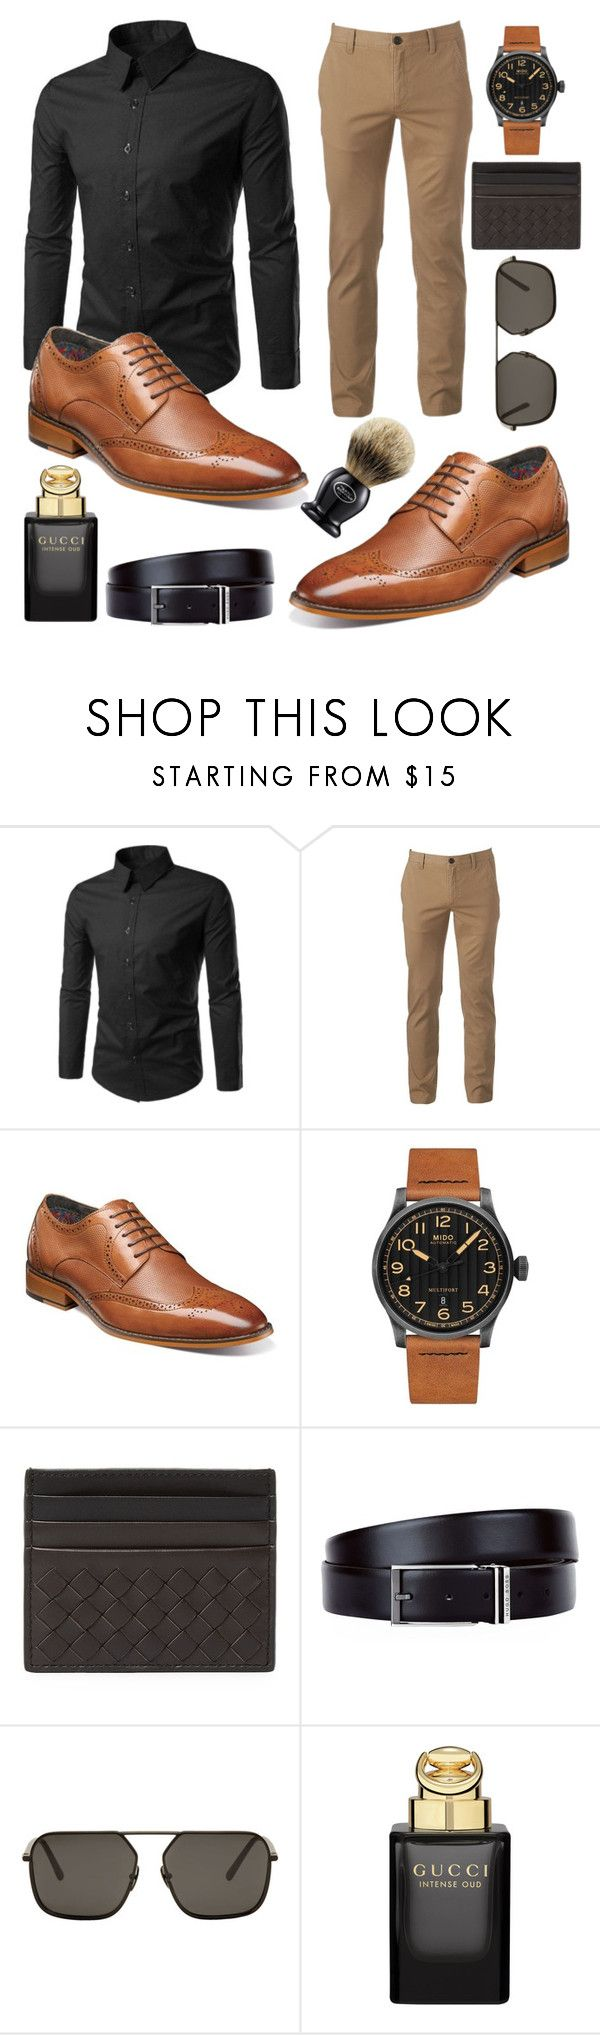 """Stylish men's wear"" by chalotteleah on Polyvore featuring Urban Pipeline, Stacy Adams, Mido, Bottega Veneta, HUGO, Dolce&Gabbana, Gucci, The Art of Shaving, men's fashion and menswear"